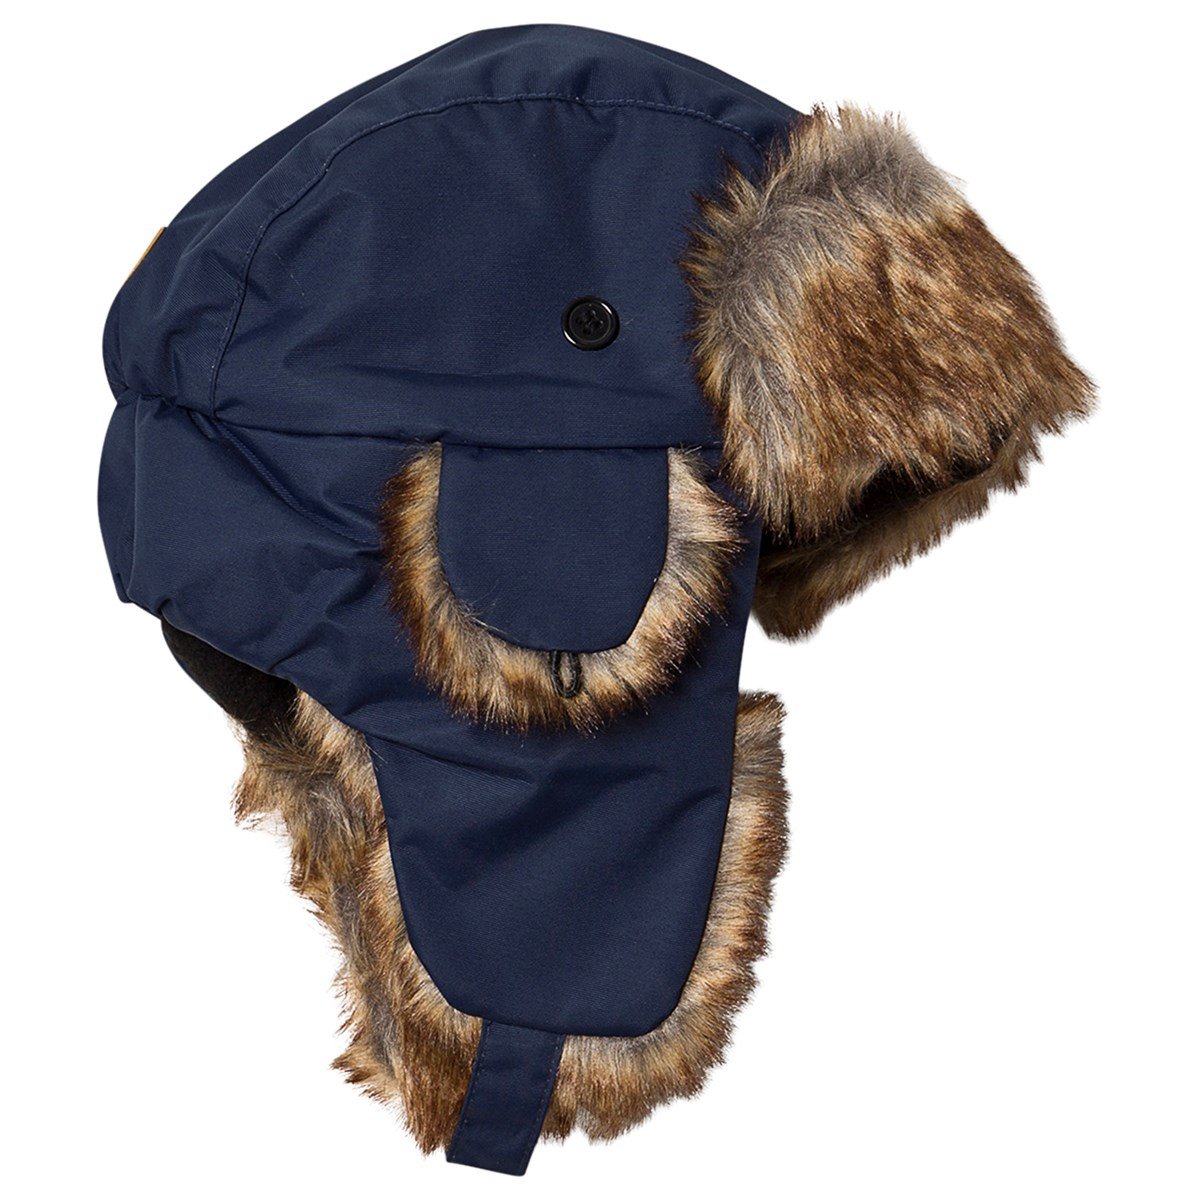 Kuling Classic Navy Levi Outdoor Winter Hat